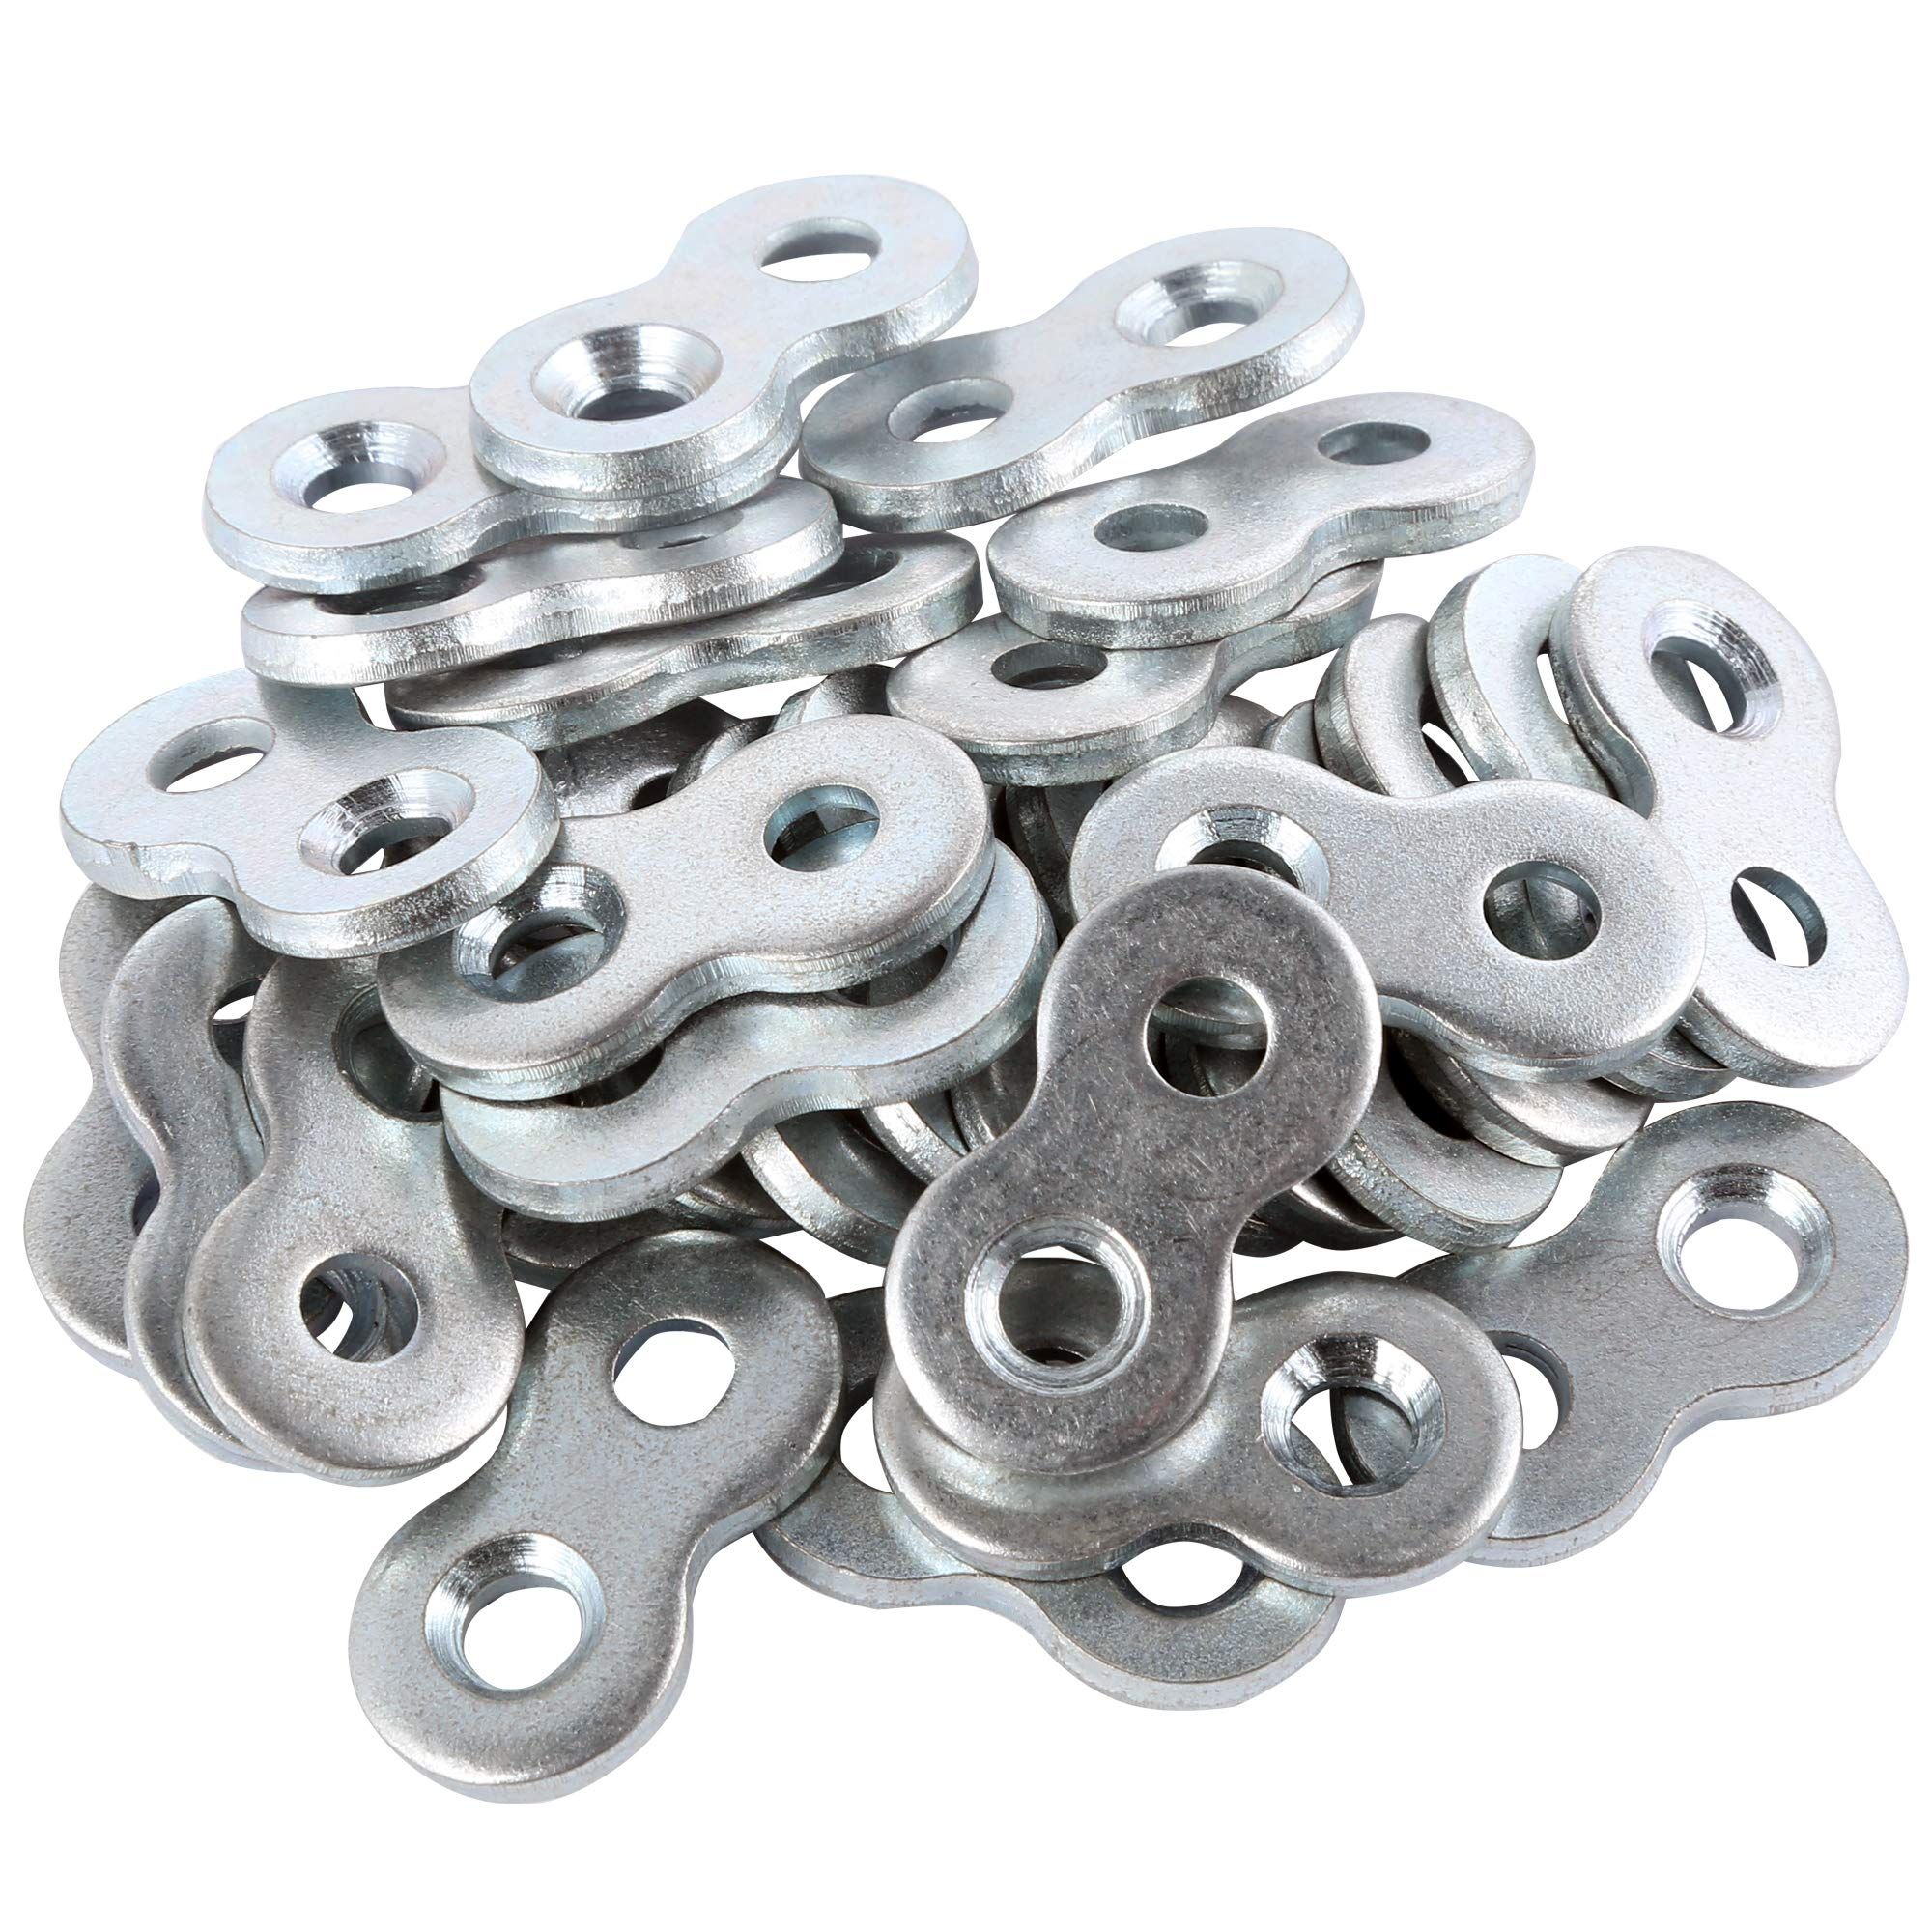 L Continue Figure 8 Fastener or Table Fasteners, Heavy Duty Steel and Galvanized Exterior. (30 Pack)